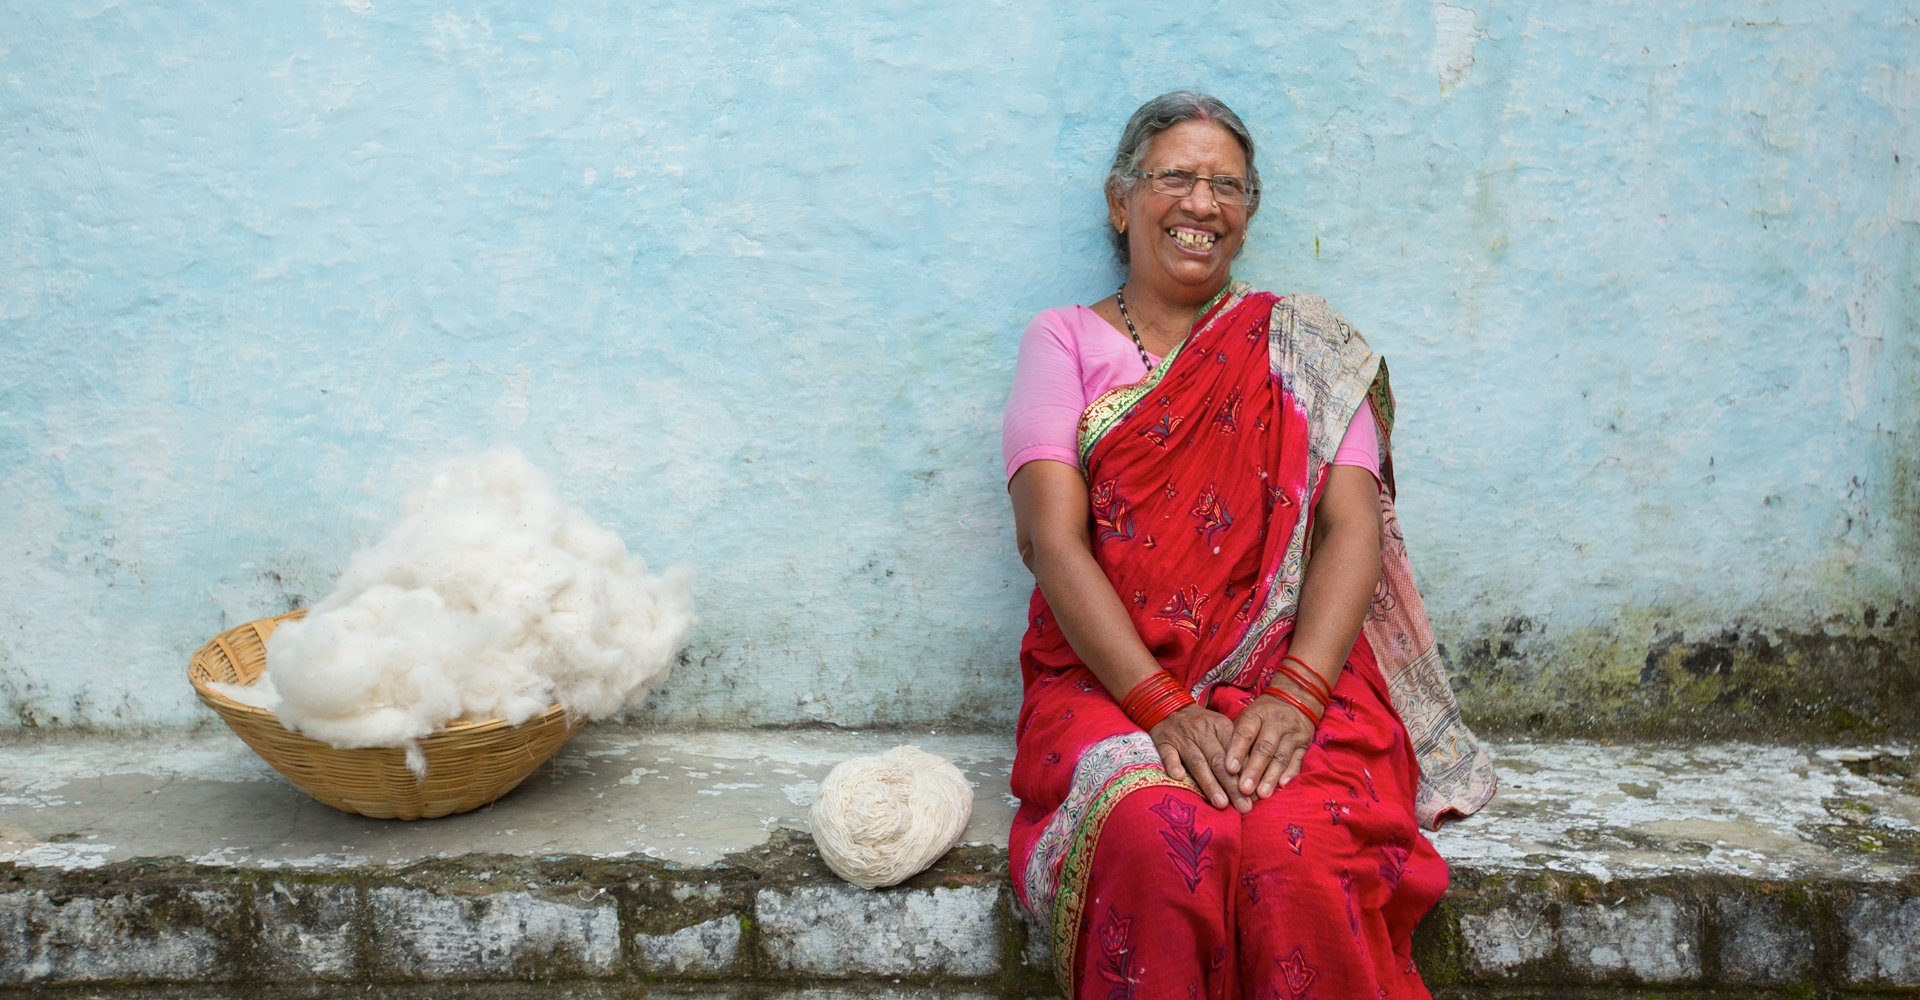 Raw cotton in India, to make Joyn designer bags | For Dignity Australia